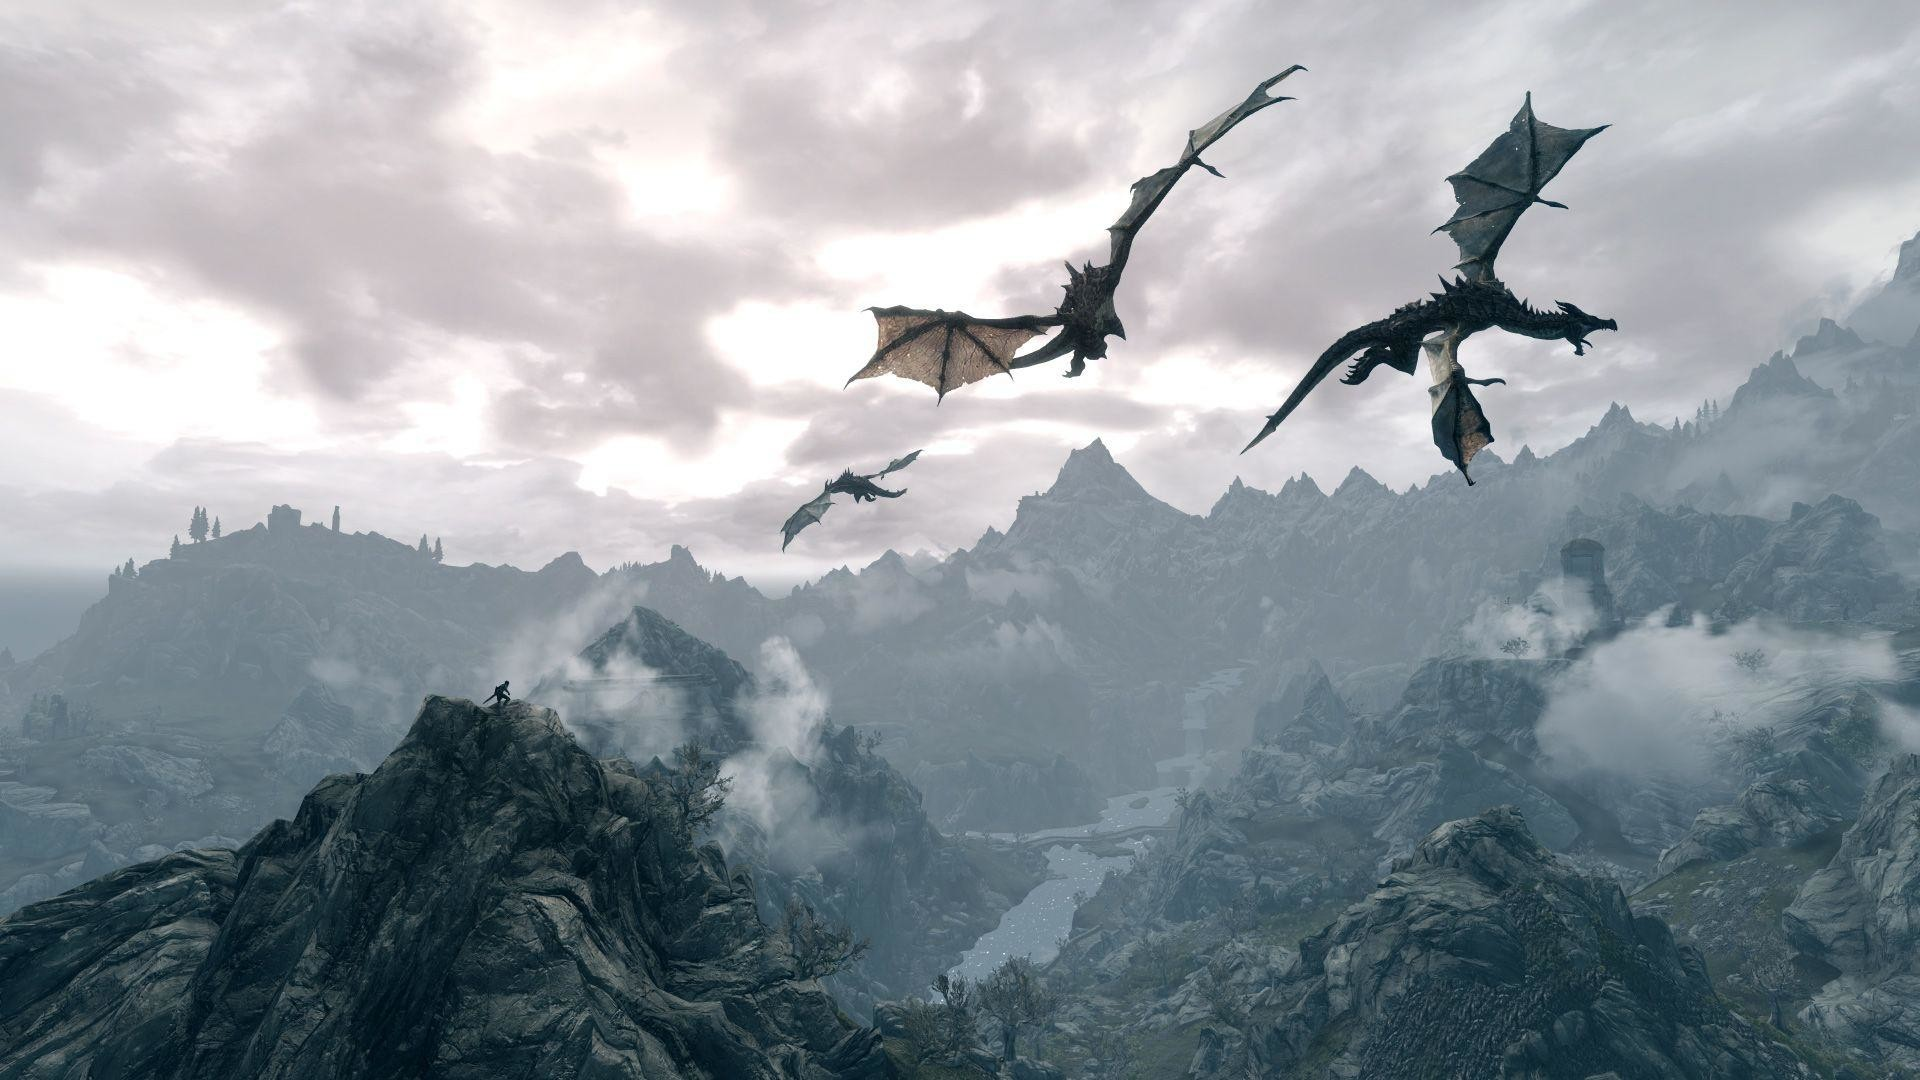 1920x1080 Wallpapers For > Skyrim Dragon Wallpaper Widescreen